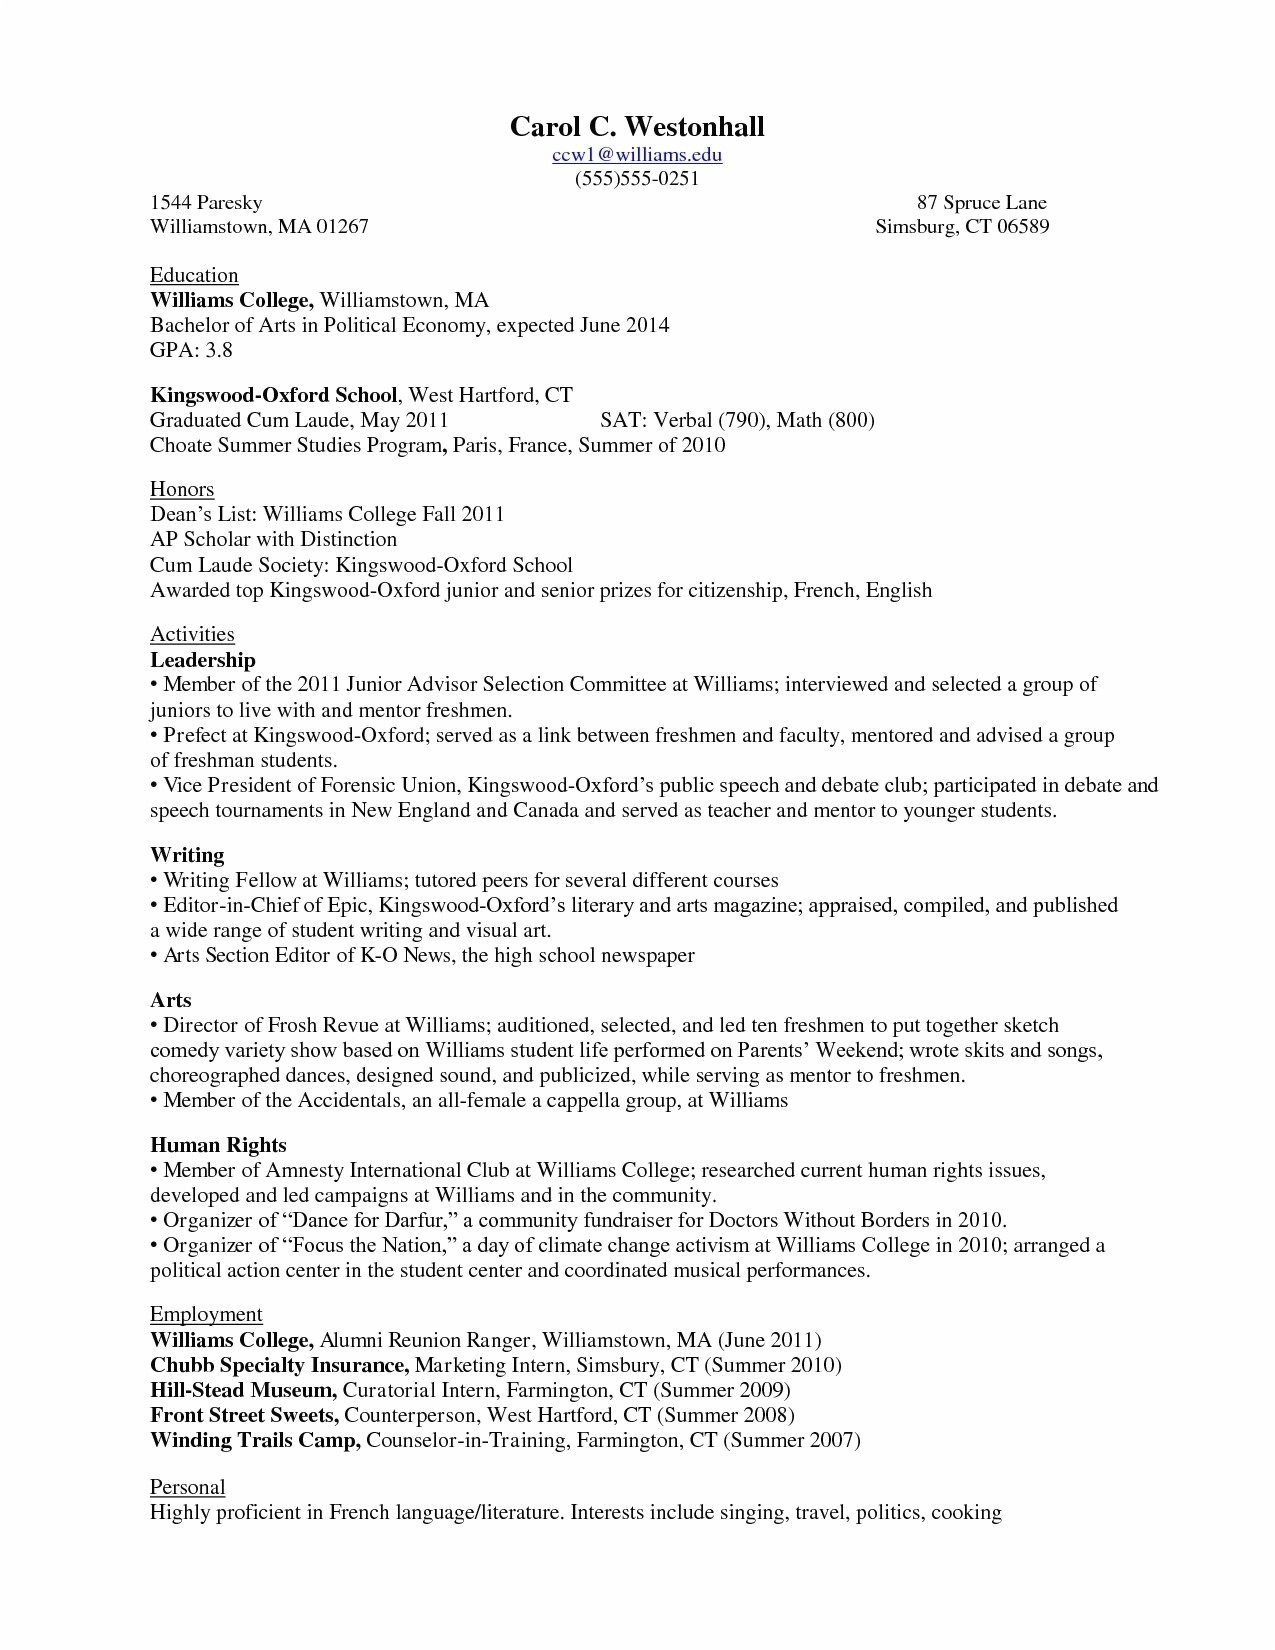 Sample College Application Resume Ivy League 22 Regular Sample College Application Resume Ivy League